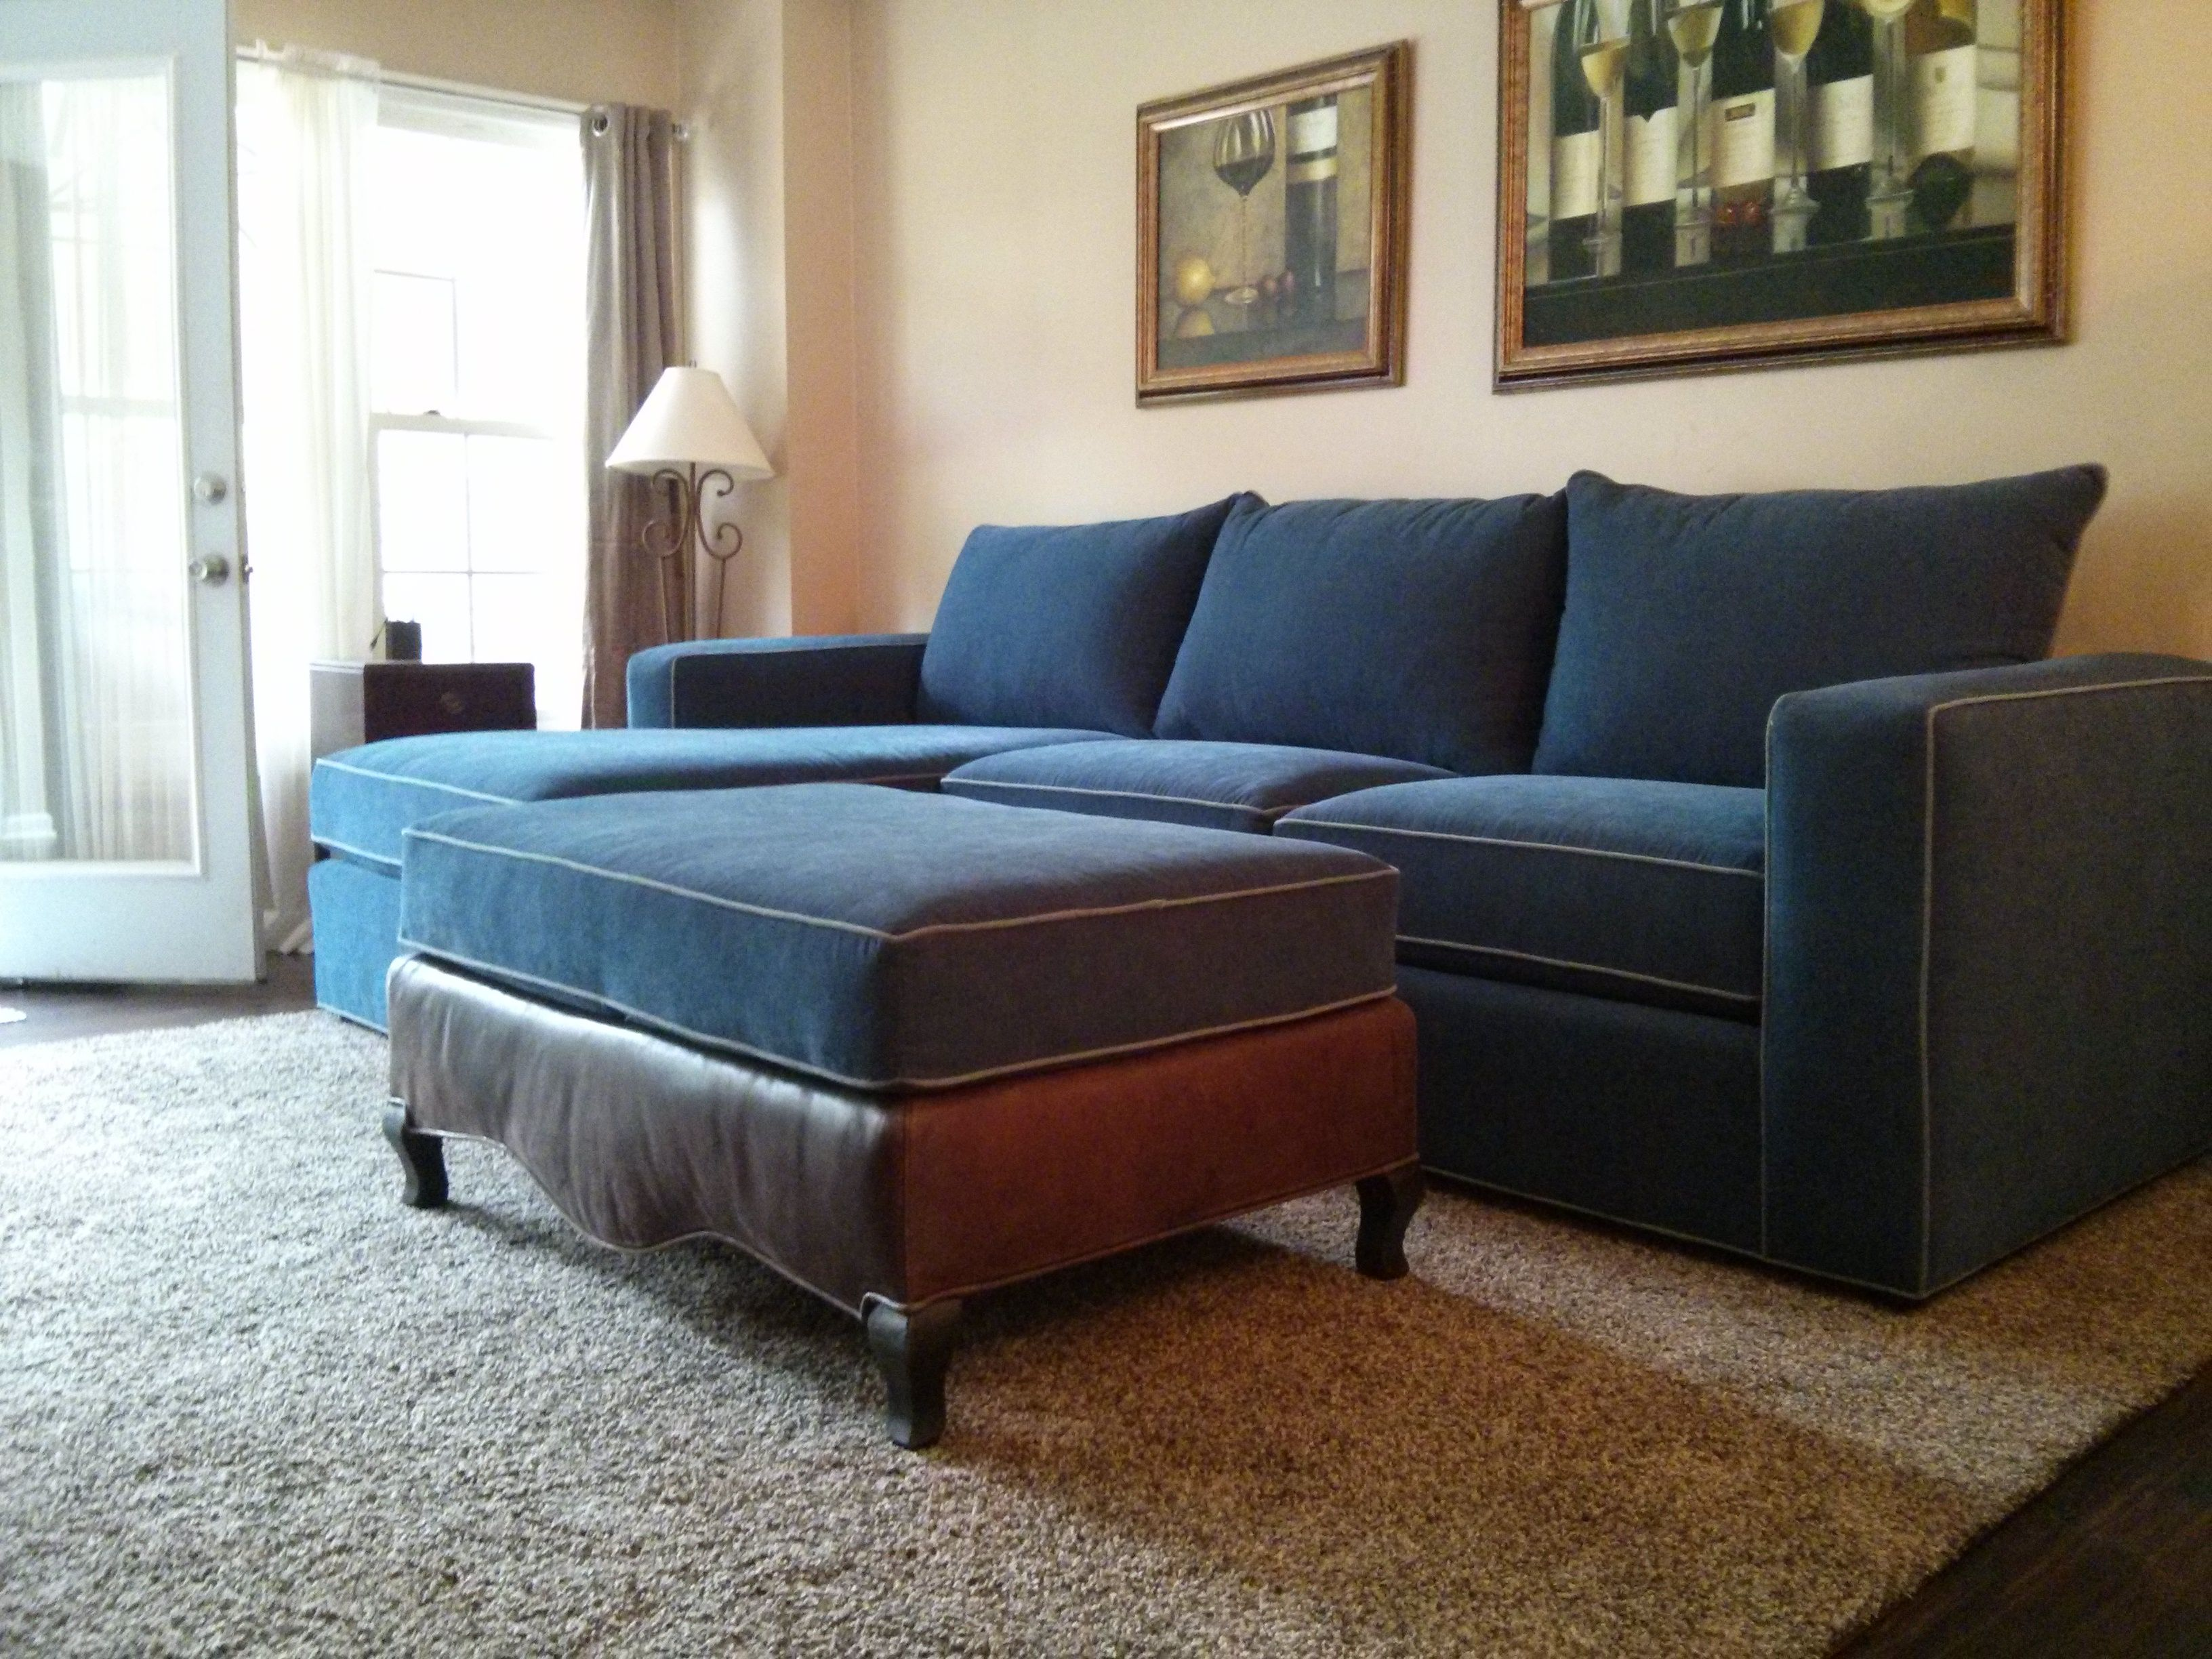 Reupholstered sofa and ottoman Material used is blue velvet with